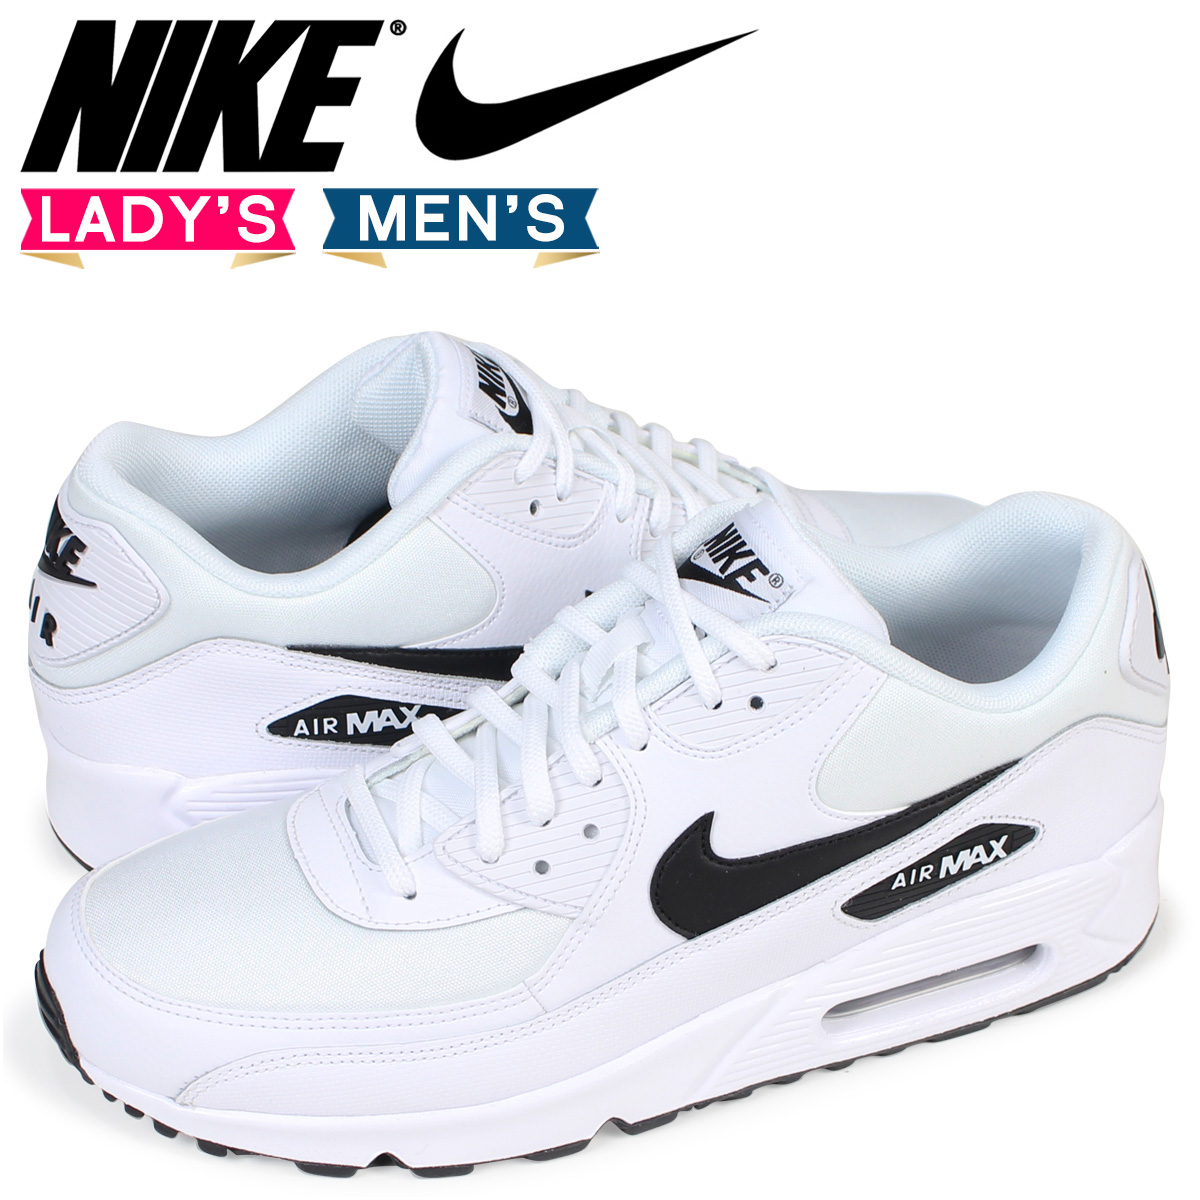 Nike NIKE Air Max 90 Lady's sneakers WMNS AIR MAX 90 325,213-131 men's shoes white [the load planned additional arrival in reservation product 12/ 22 ...